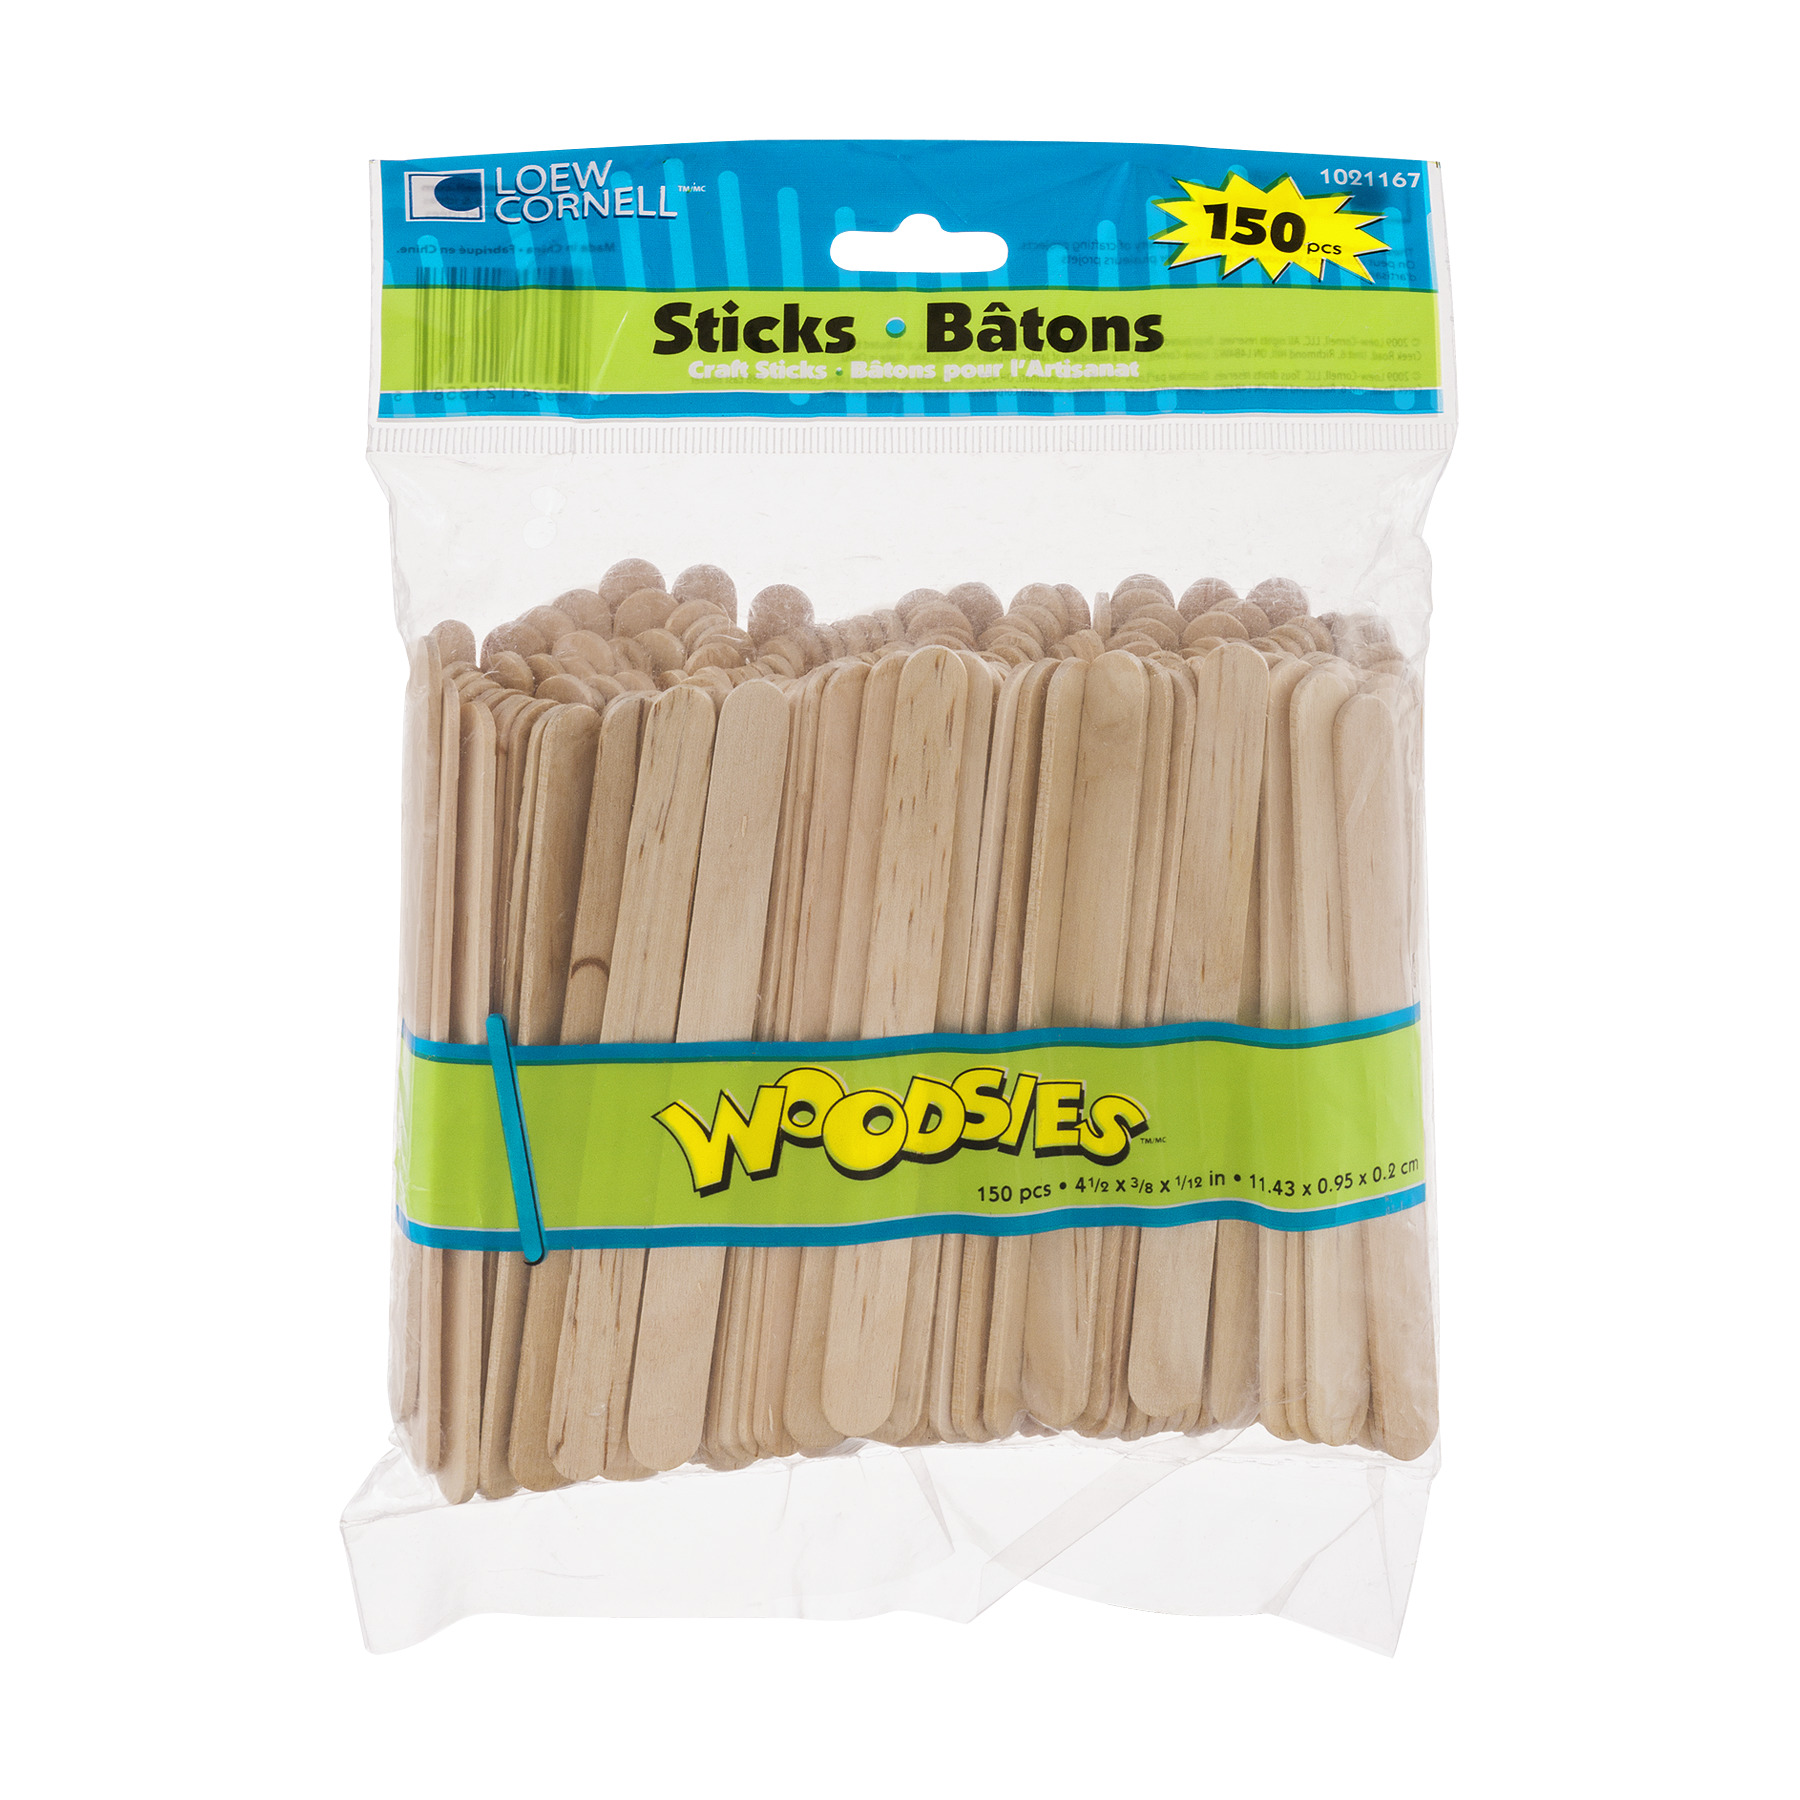 Loew Cornell Woodsies Craft Sticks - 150 CT150.0 CT